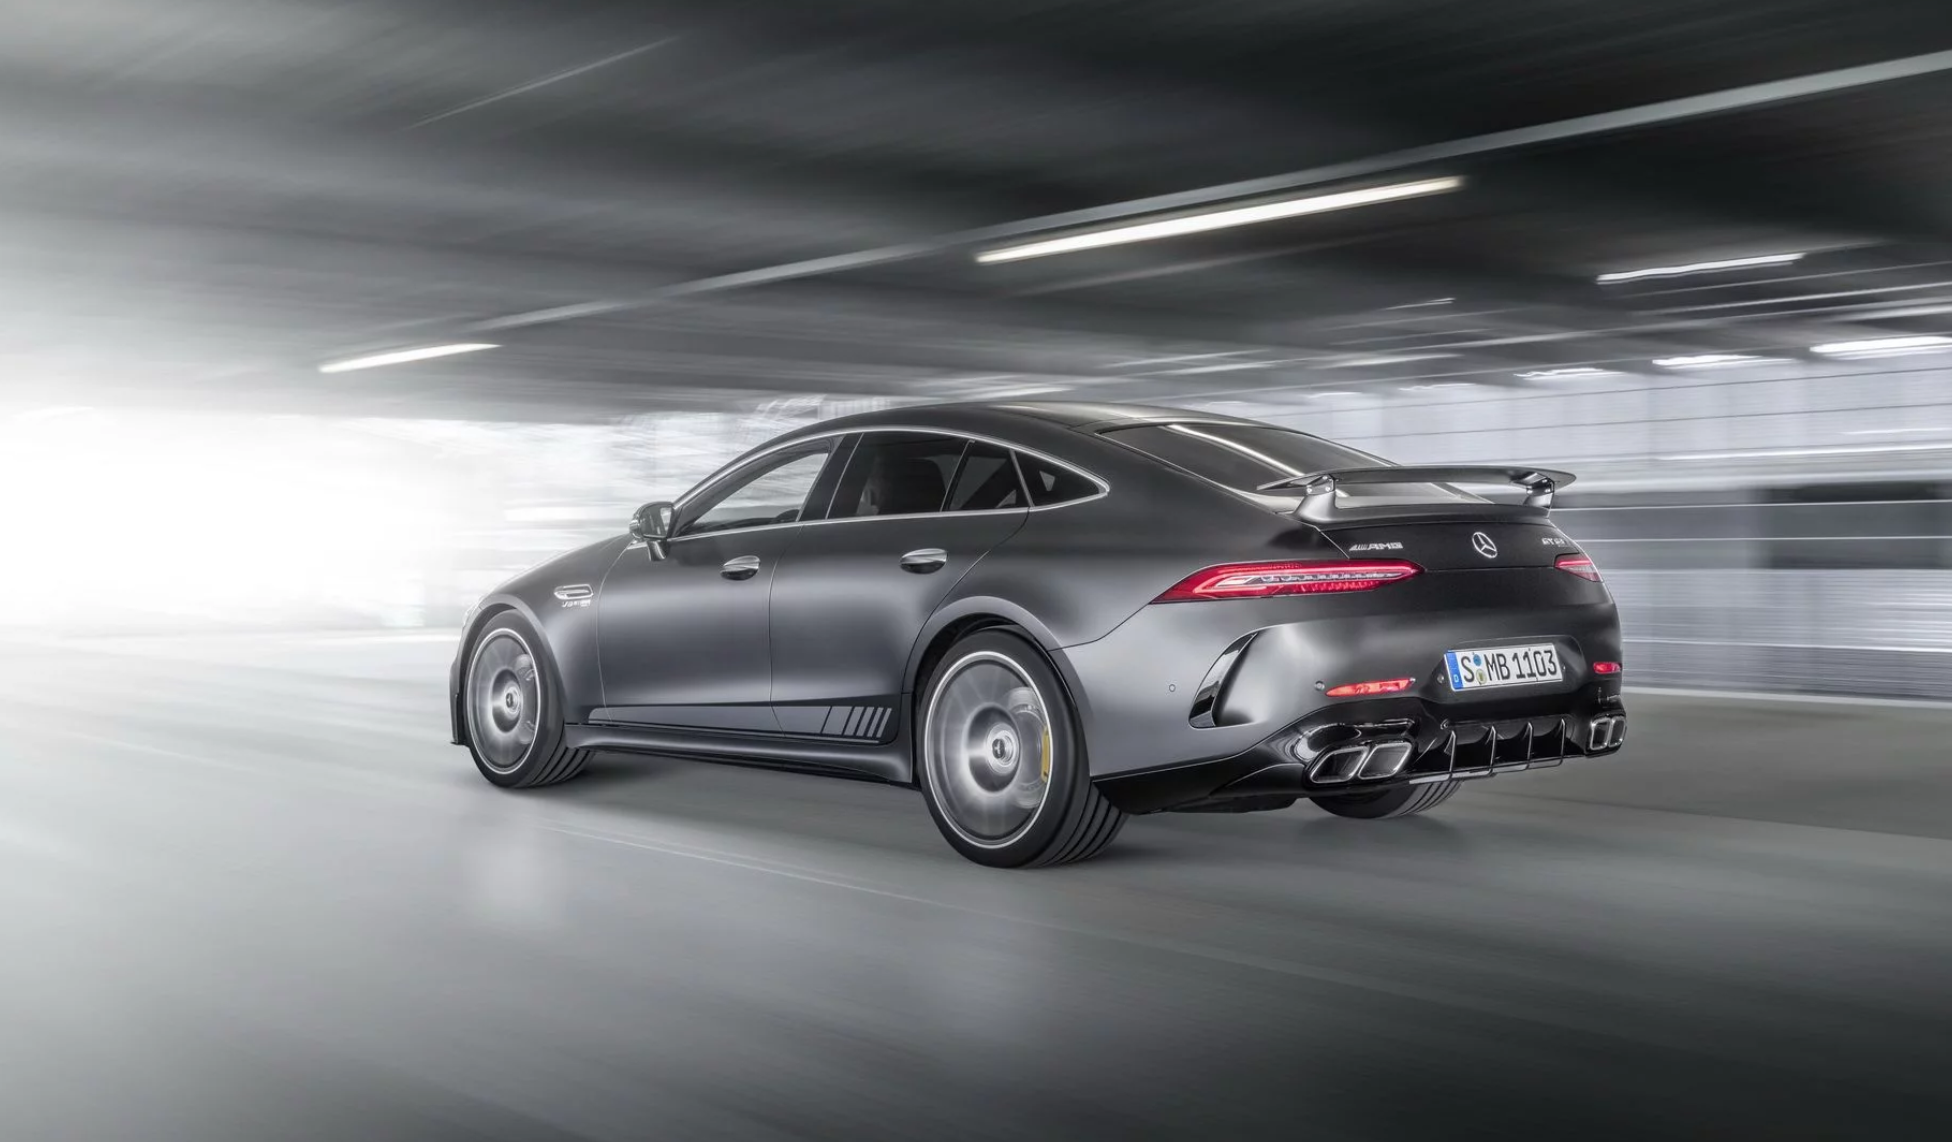 mercedes-amg-gt-63-s-edition-1-02.png